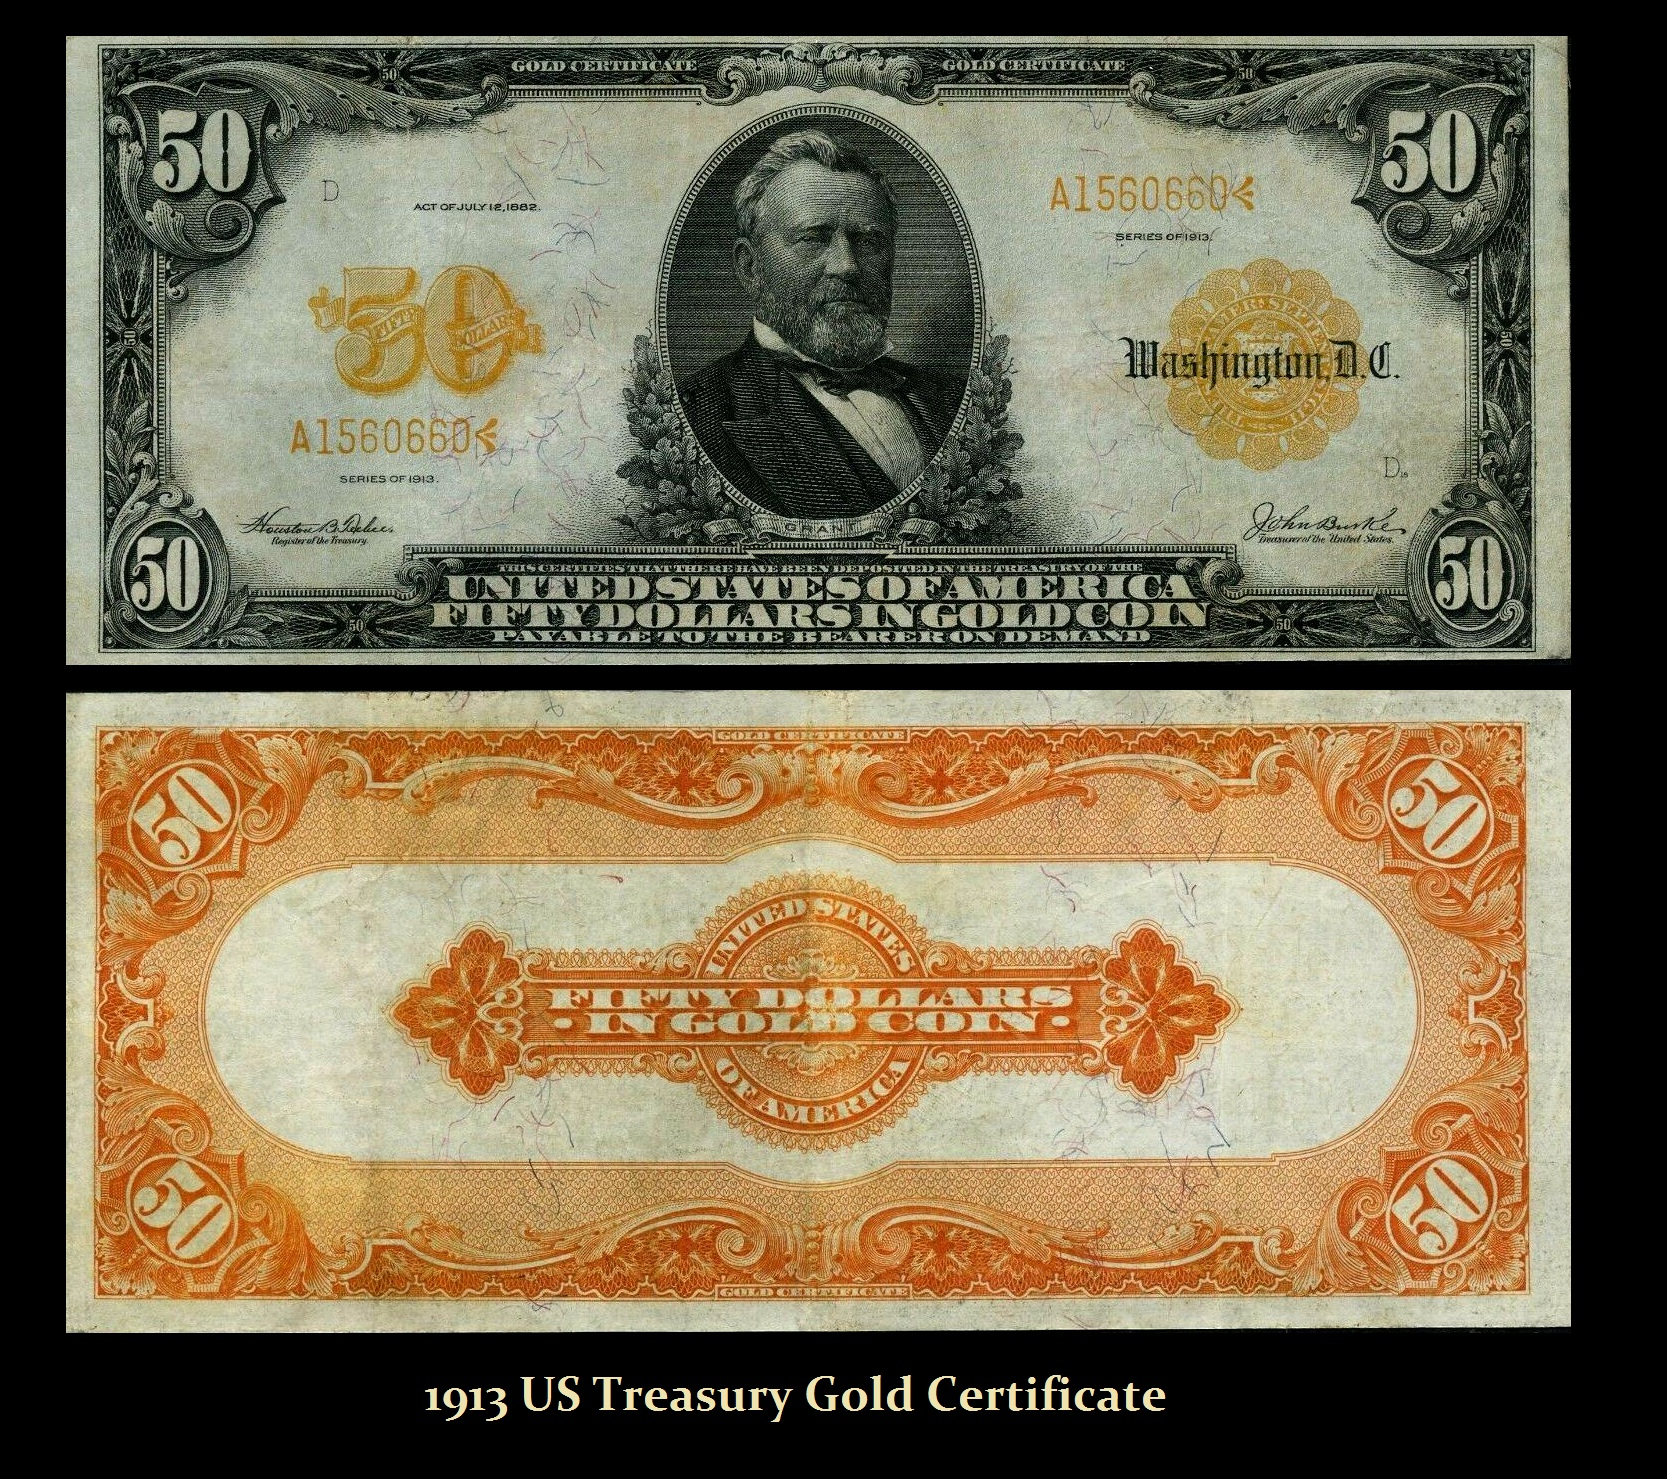 The US Treasury Does Have the Constitutional Right to Mint Coins